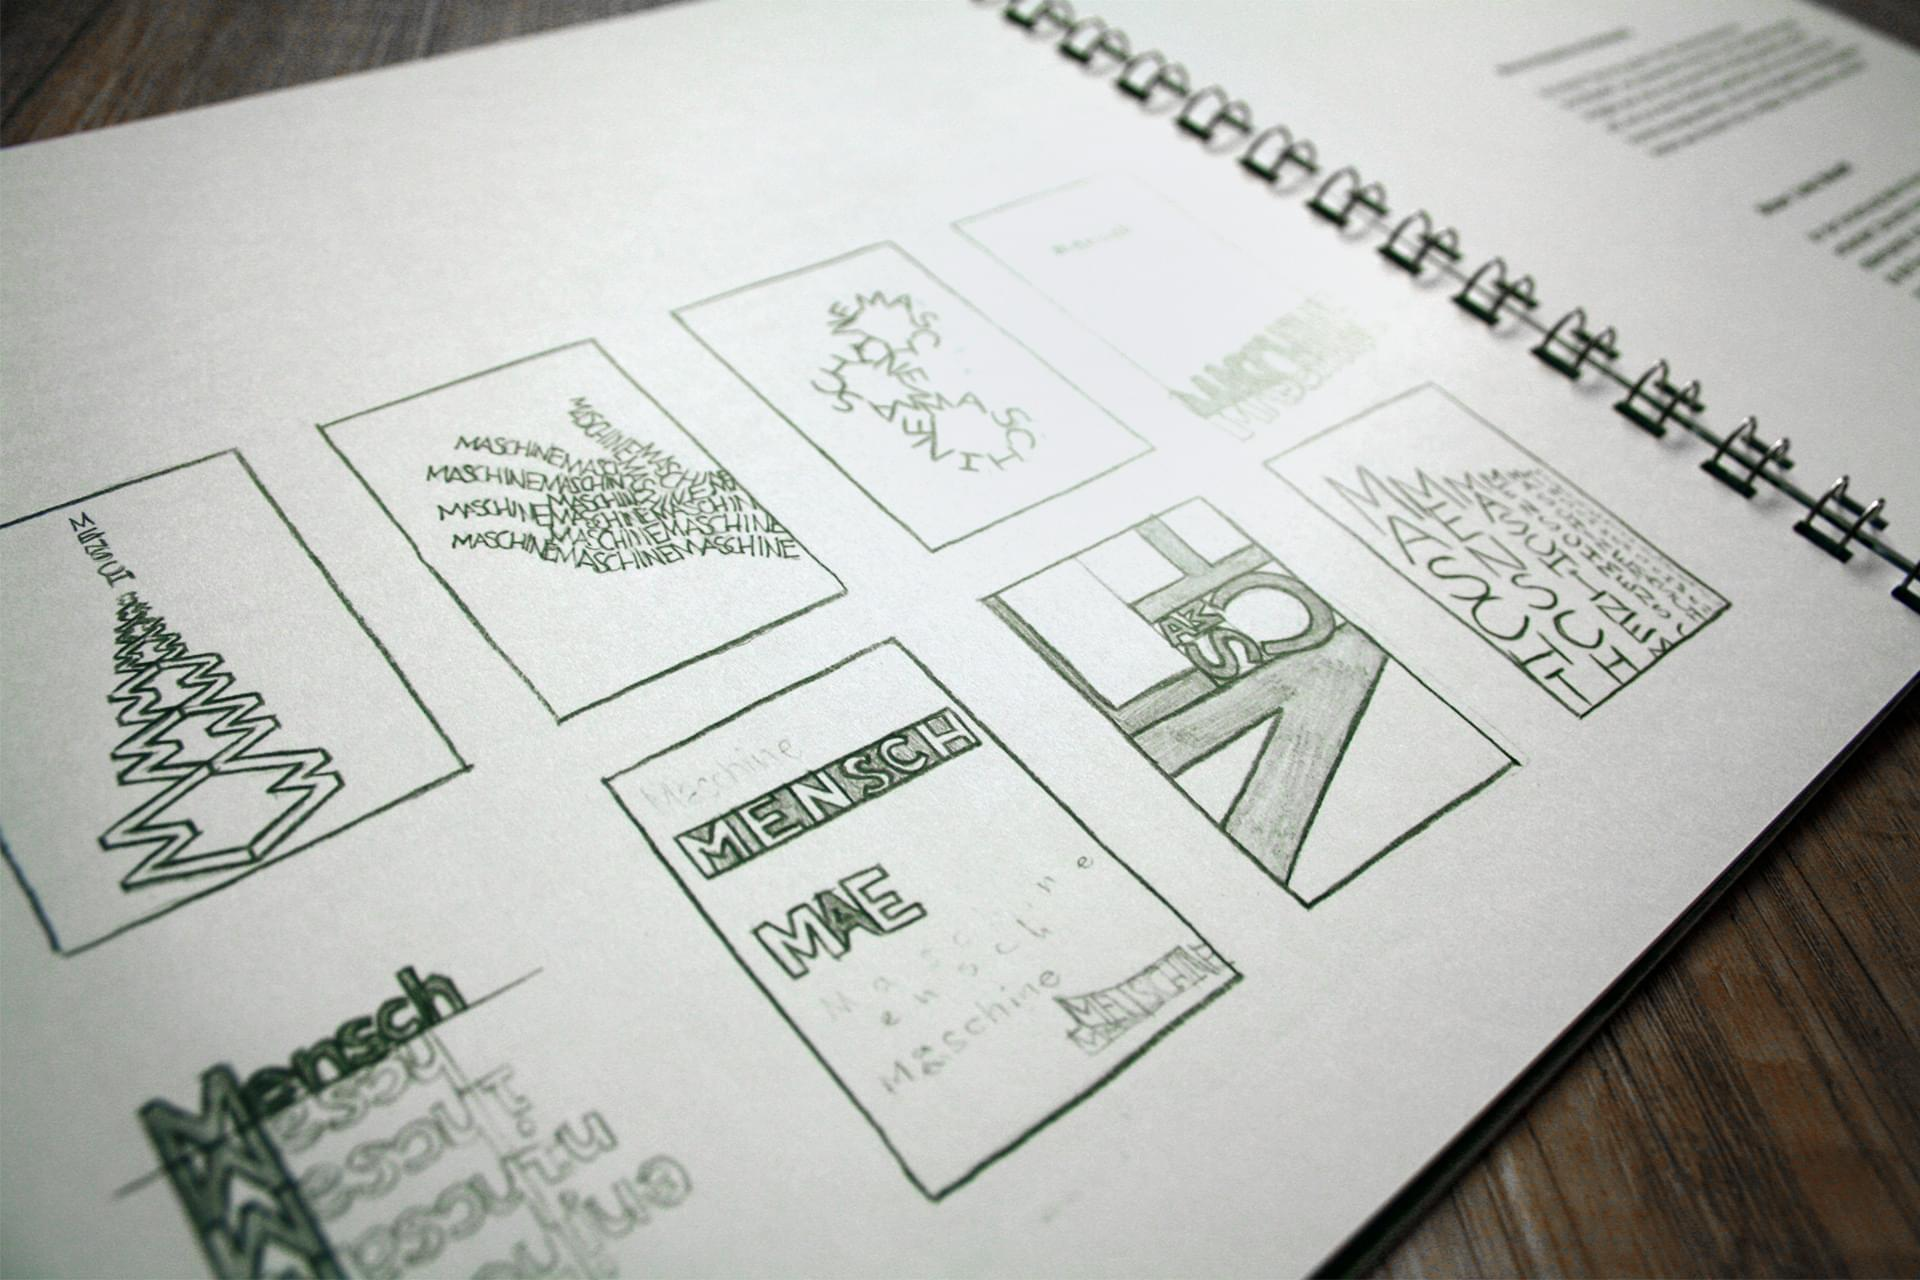 A page in the booklet that shows sketches for the Mensch-Maschine project.